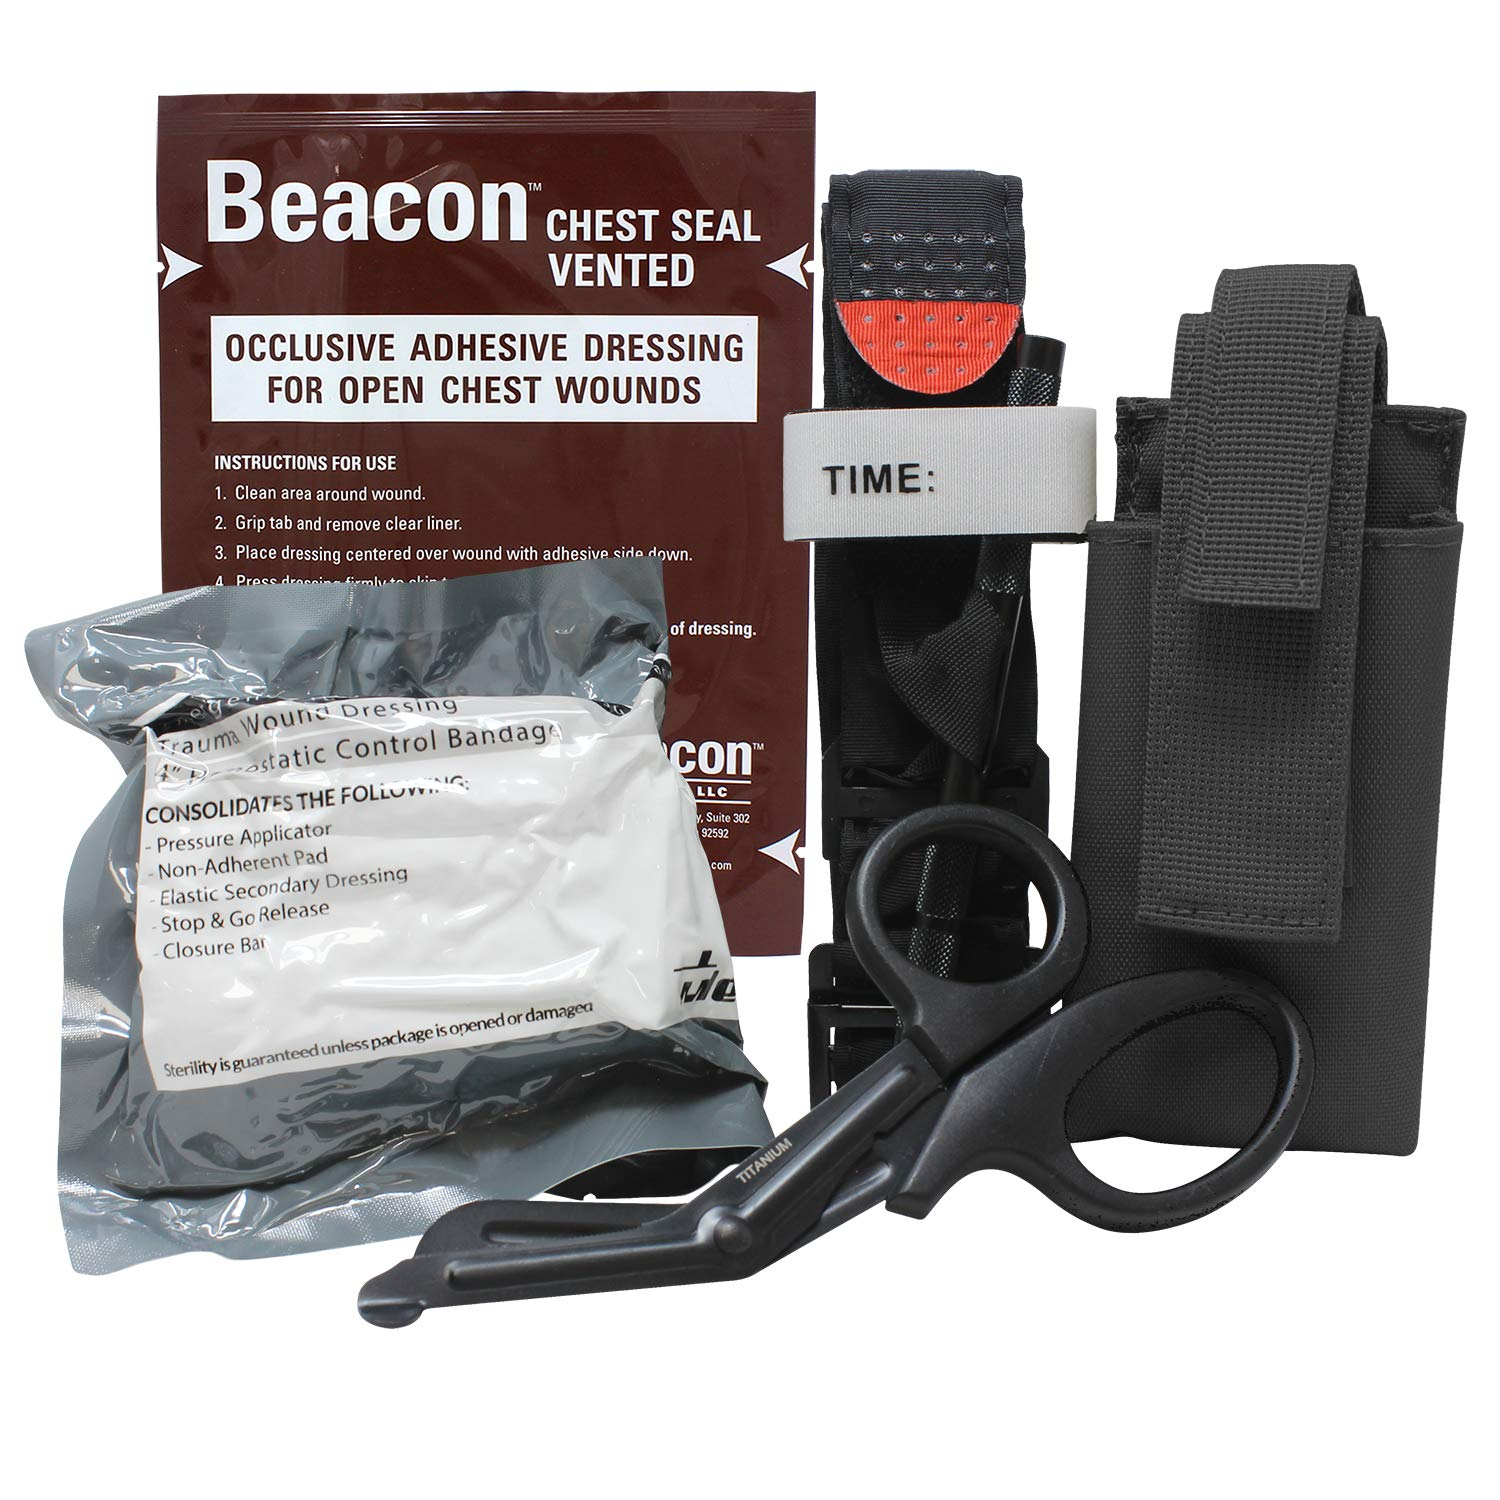 MediTac Gen 2 Deluxe Combo IFAK Kit - Feat. Tourniquet and Holder, Beacon Vented Chest Seal, Emergency Hemostatic Control Bandage and Titanium EMS Shears - Black by MediTac